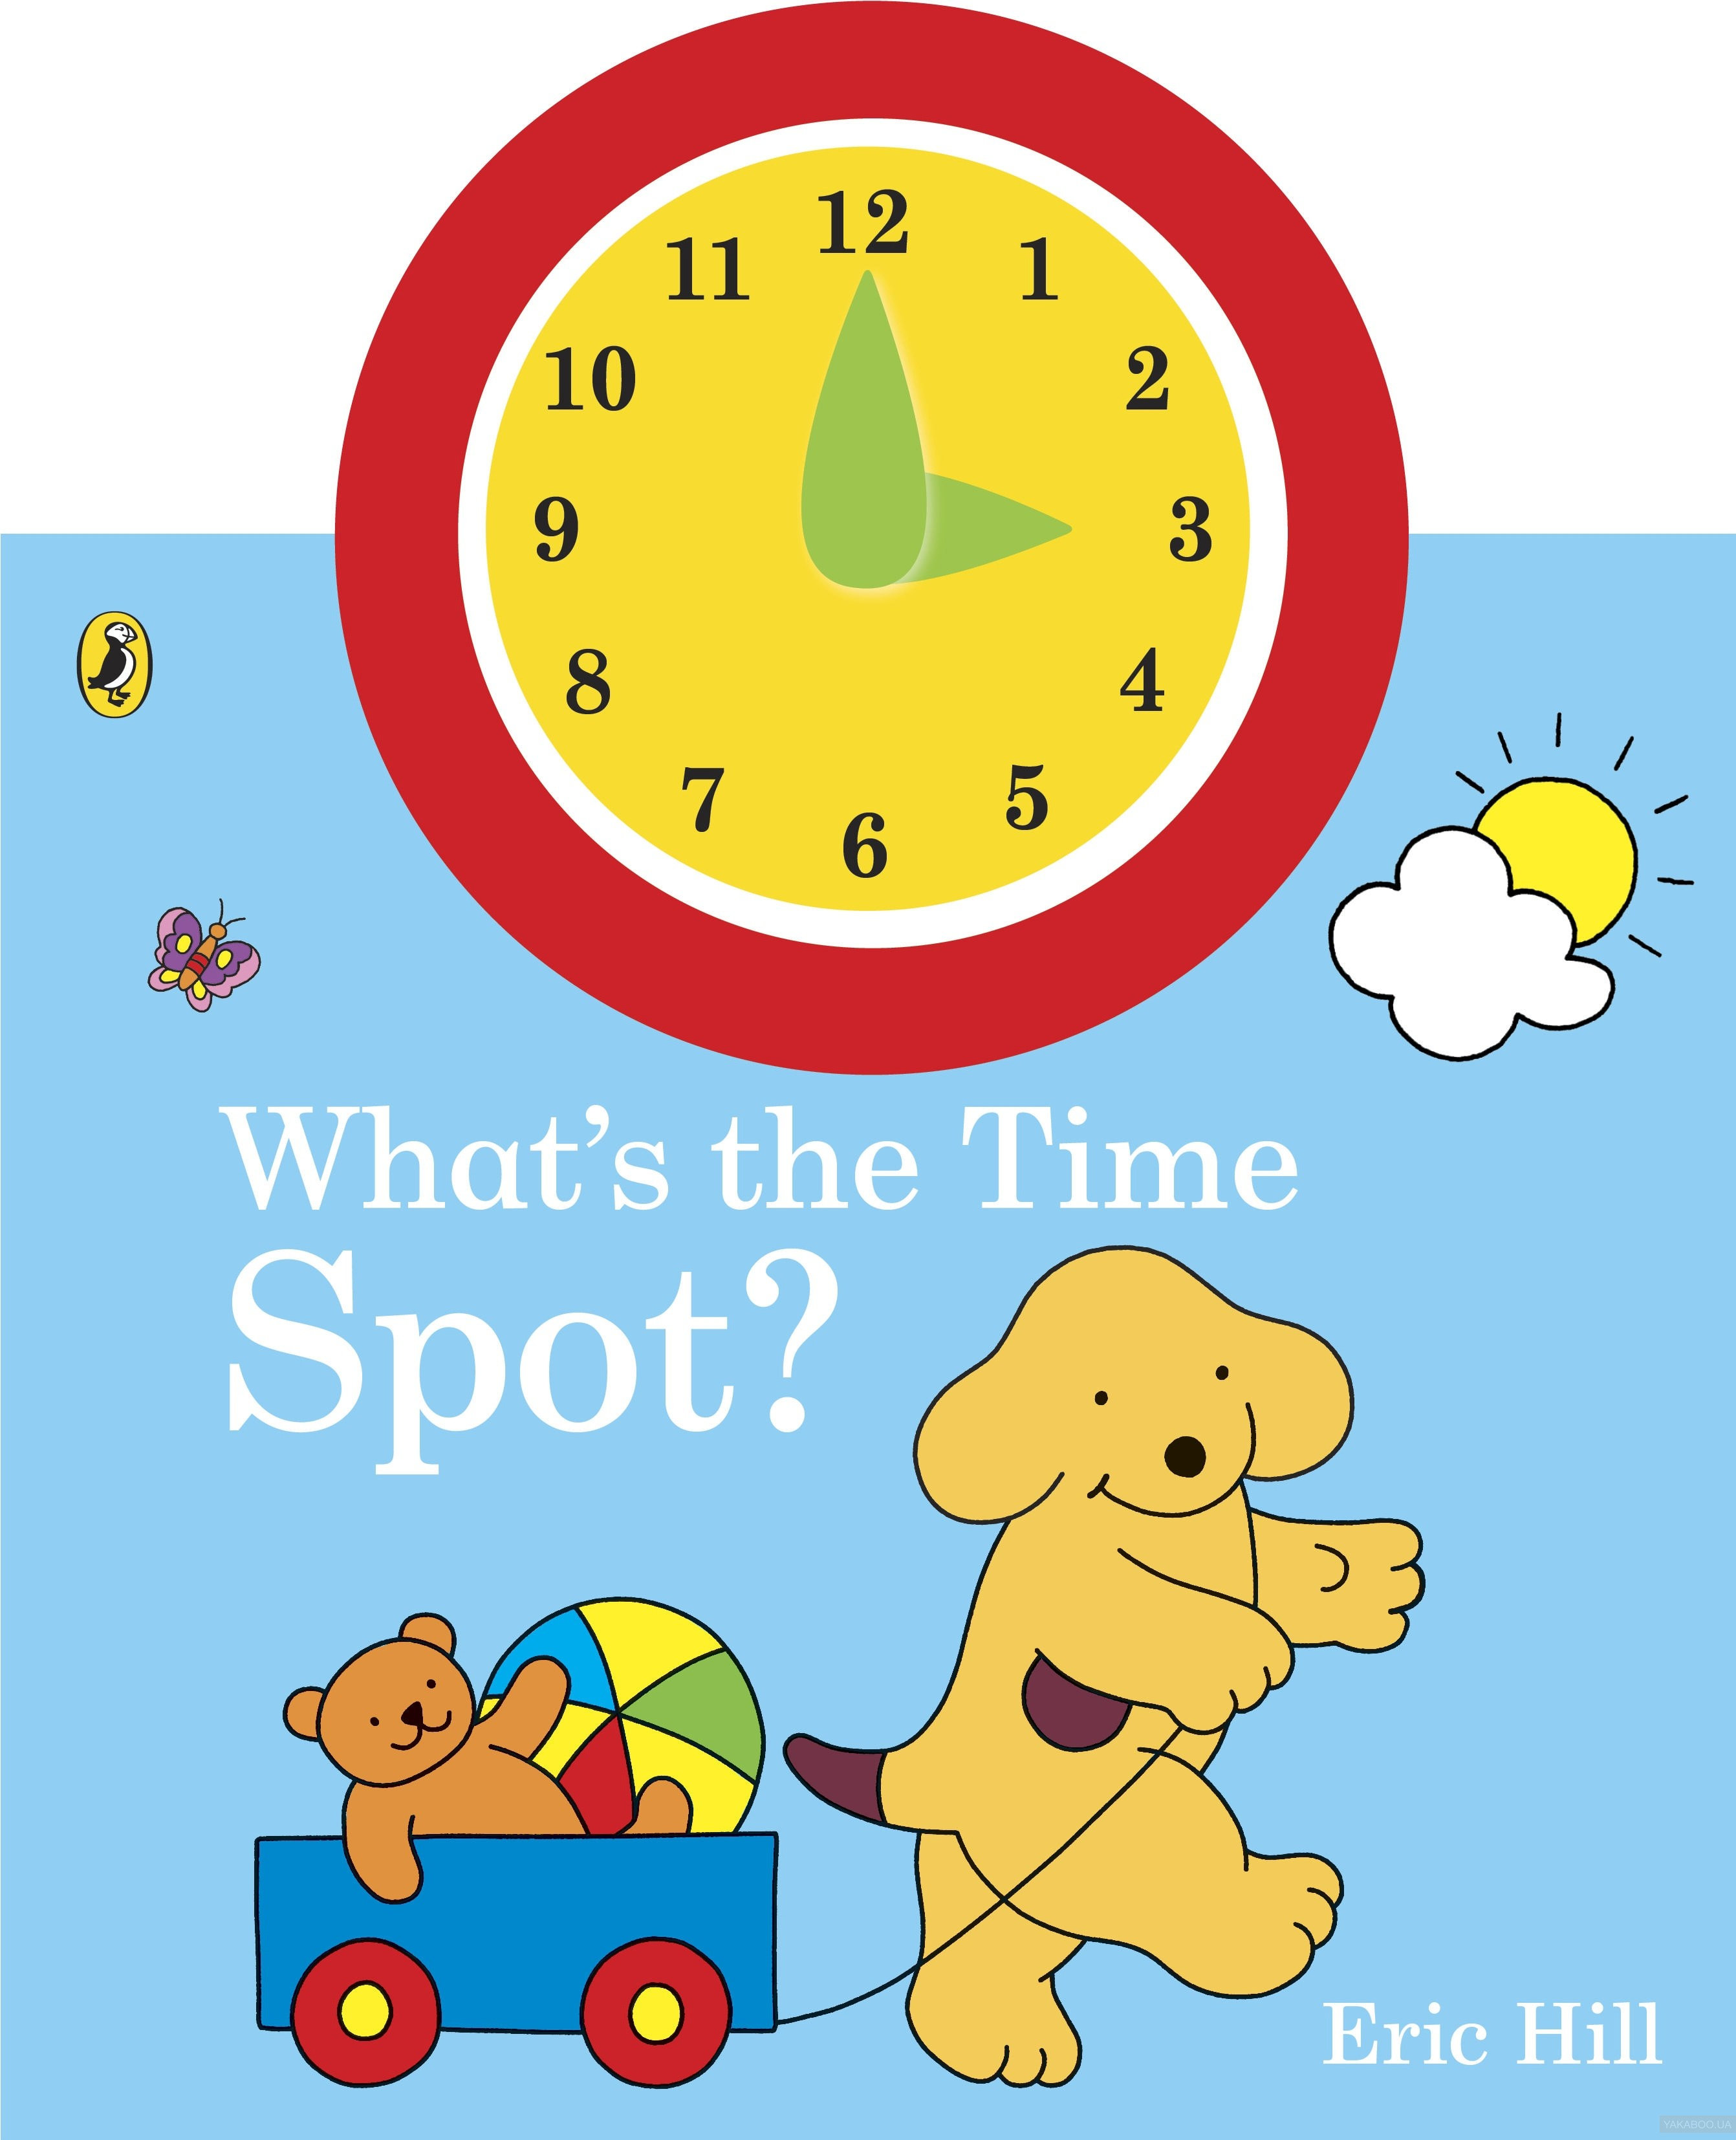 What's the time spot?